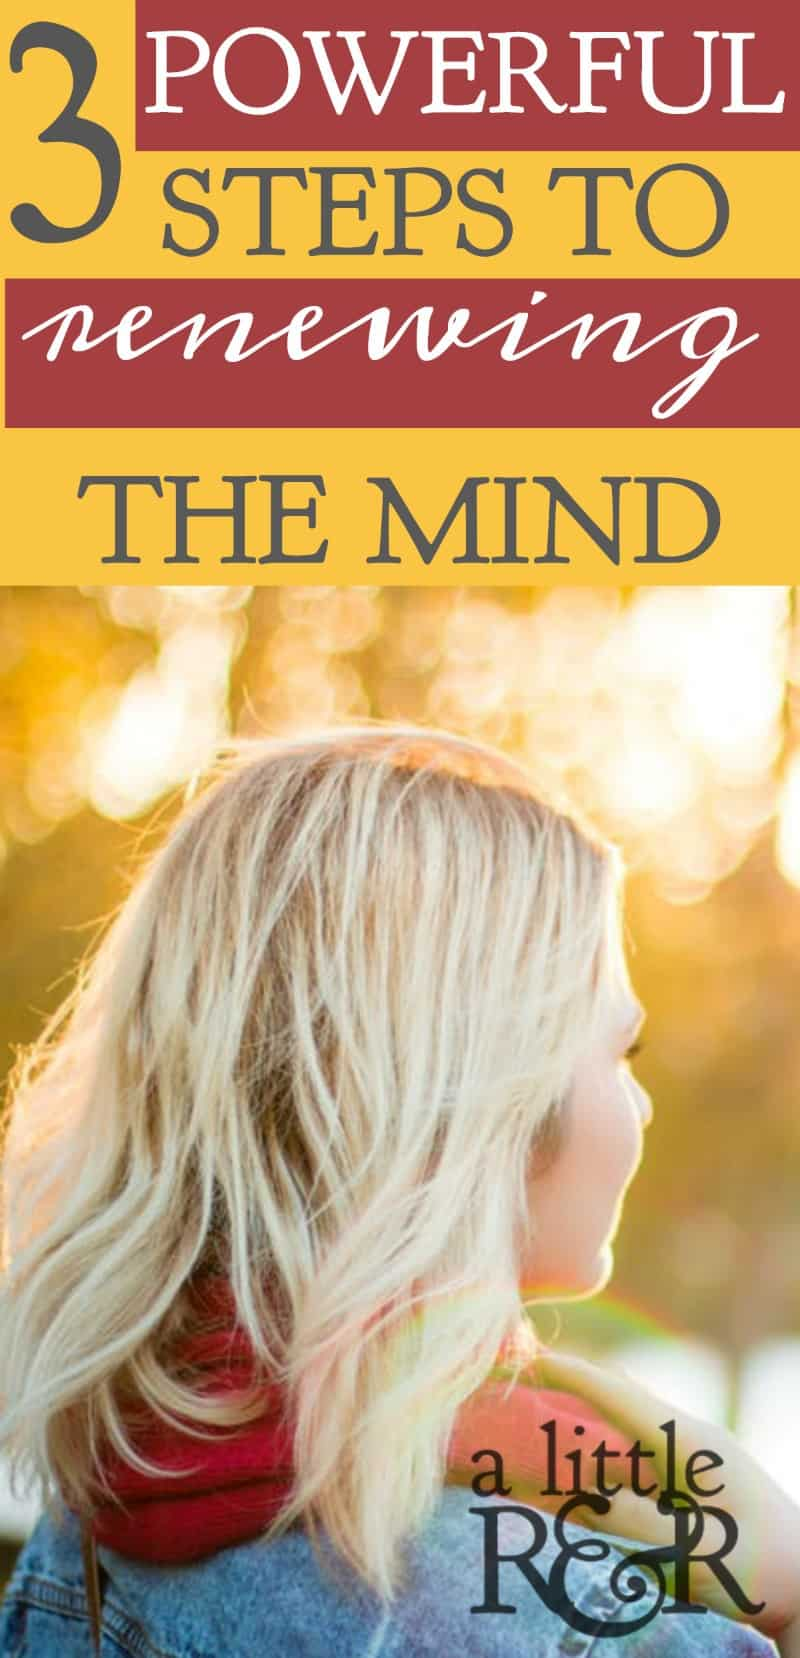 The key to living the victorious Christian life is renewing your mind and learning to identify as a new creation | A Little R & R | Rosilind Jukić | Christianity | Christian living | Christian blog | Christian faith | Renewing the Mind | Quiet Times | #christianblog #christianfaith #christianliving #spiritualgrowth #warroom #warrior #renewingthemind #Bible #God #Jesus #momlife #mom #quiettime #SOAK #biblejournaling #biblestudy